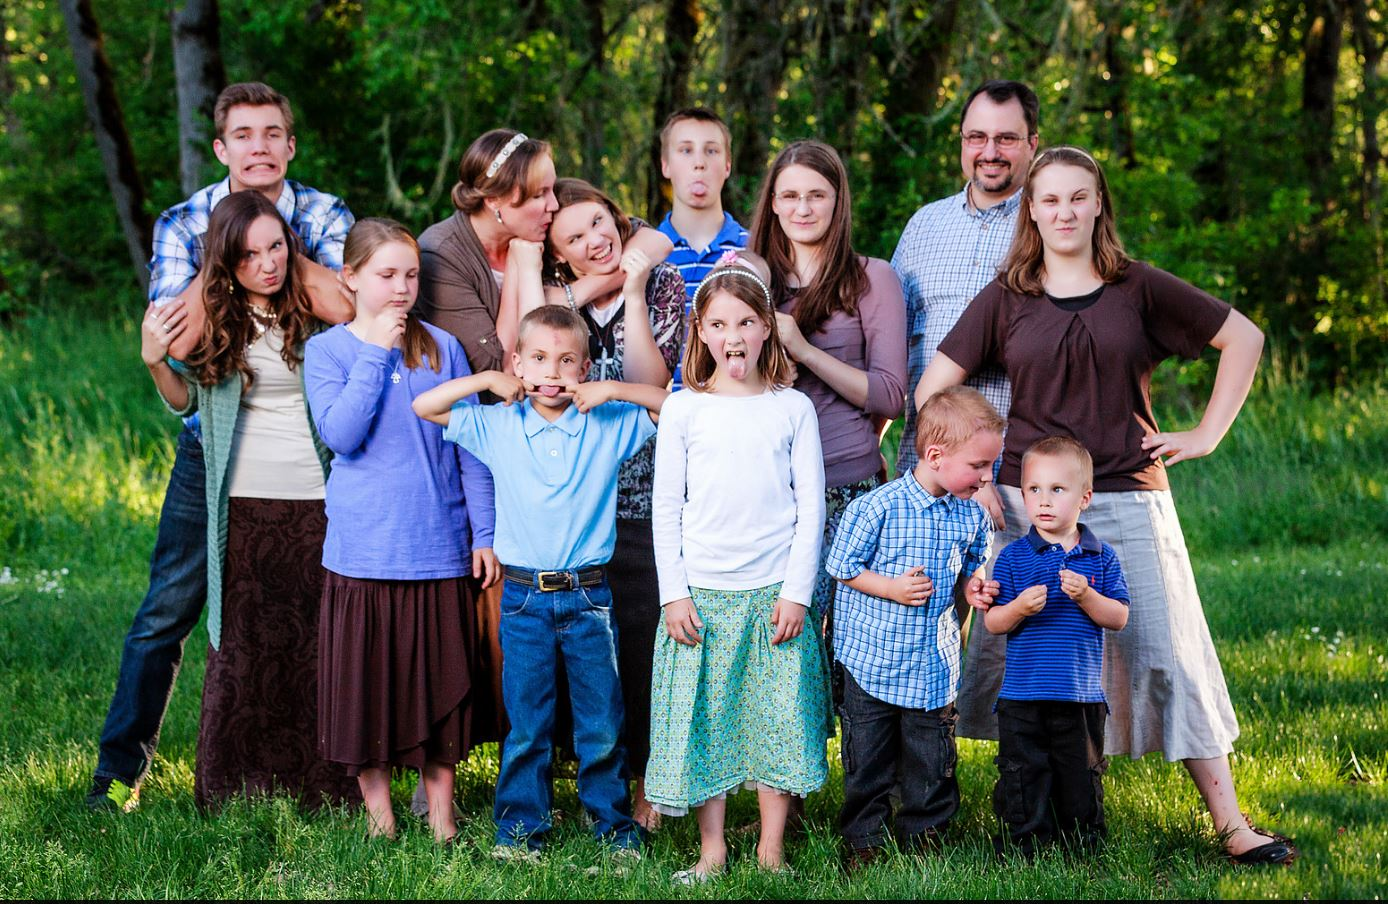 Hi! We are the Waggoner's and we are a family with twelve children (we keep Mom and Dad locked in the closet) that we homeschool and raise. The goal of this website is to show you that raising a large family is super fun and not as hard as it seems.